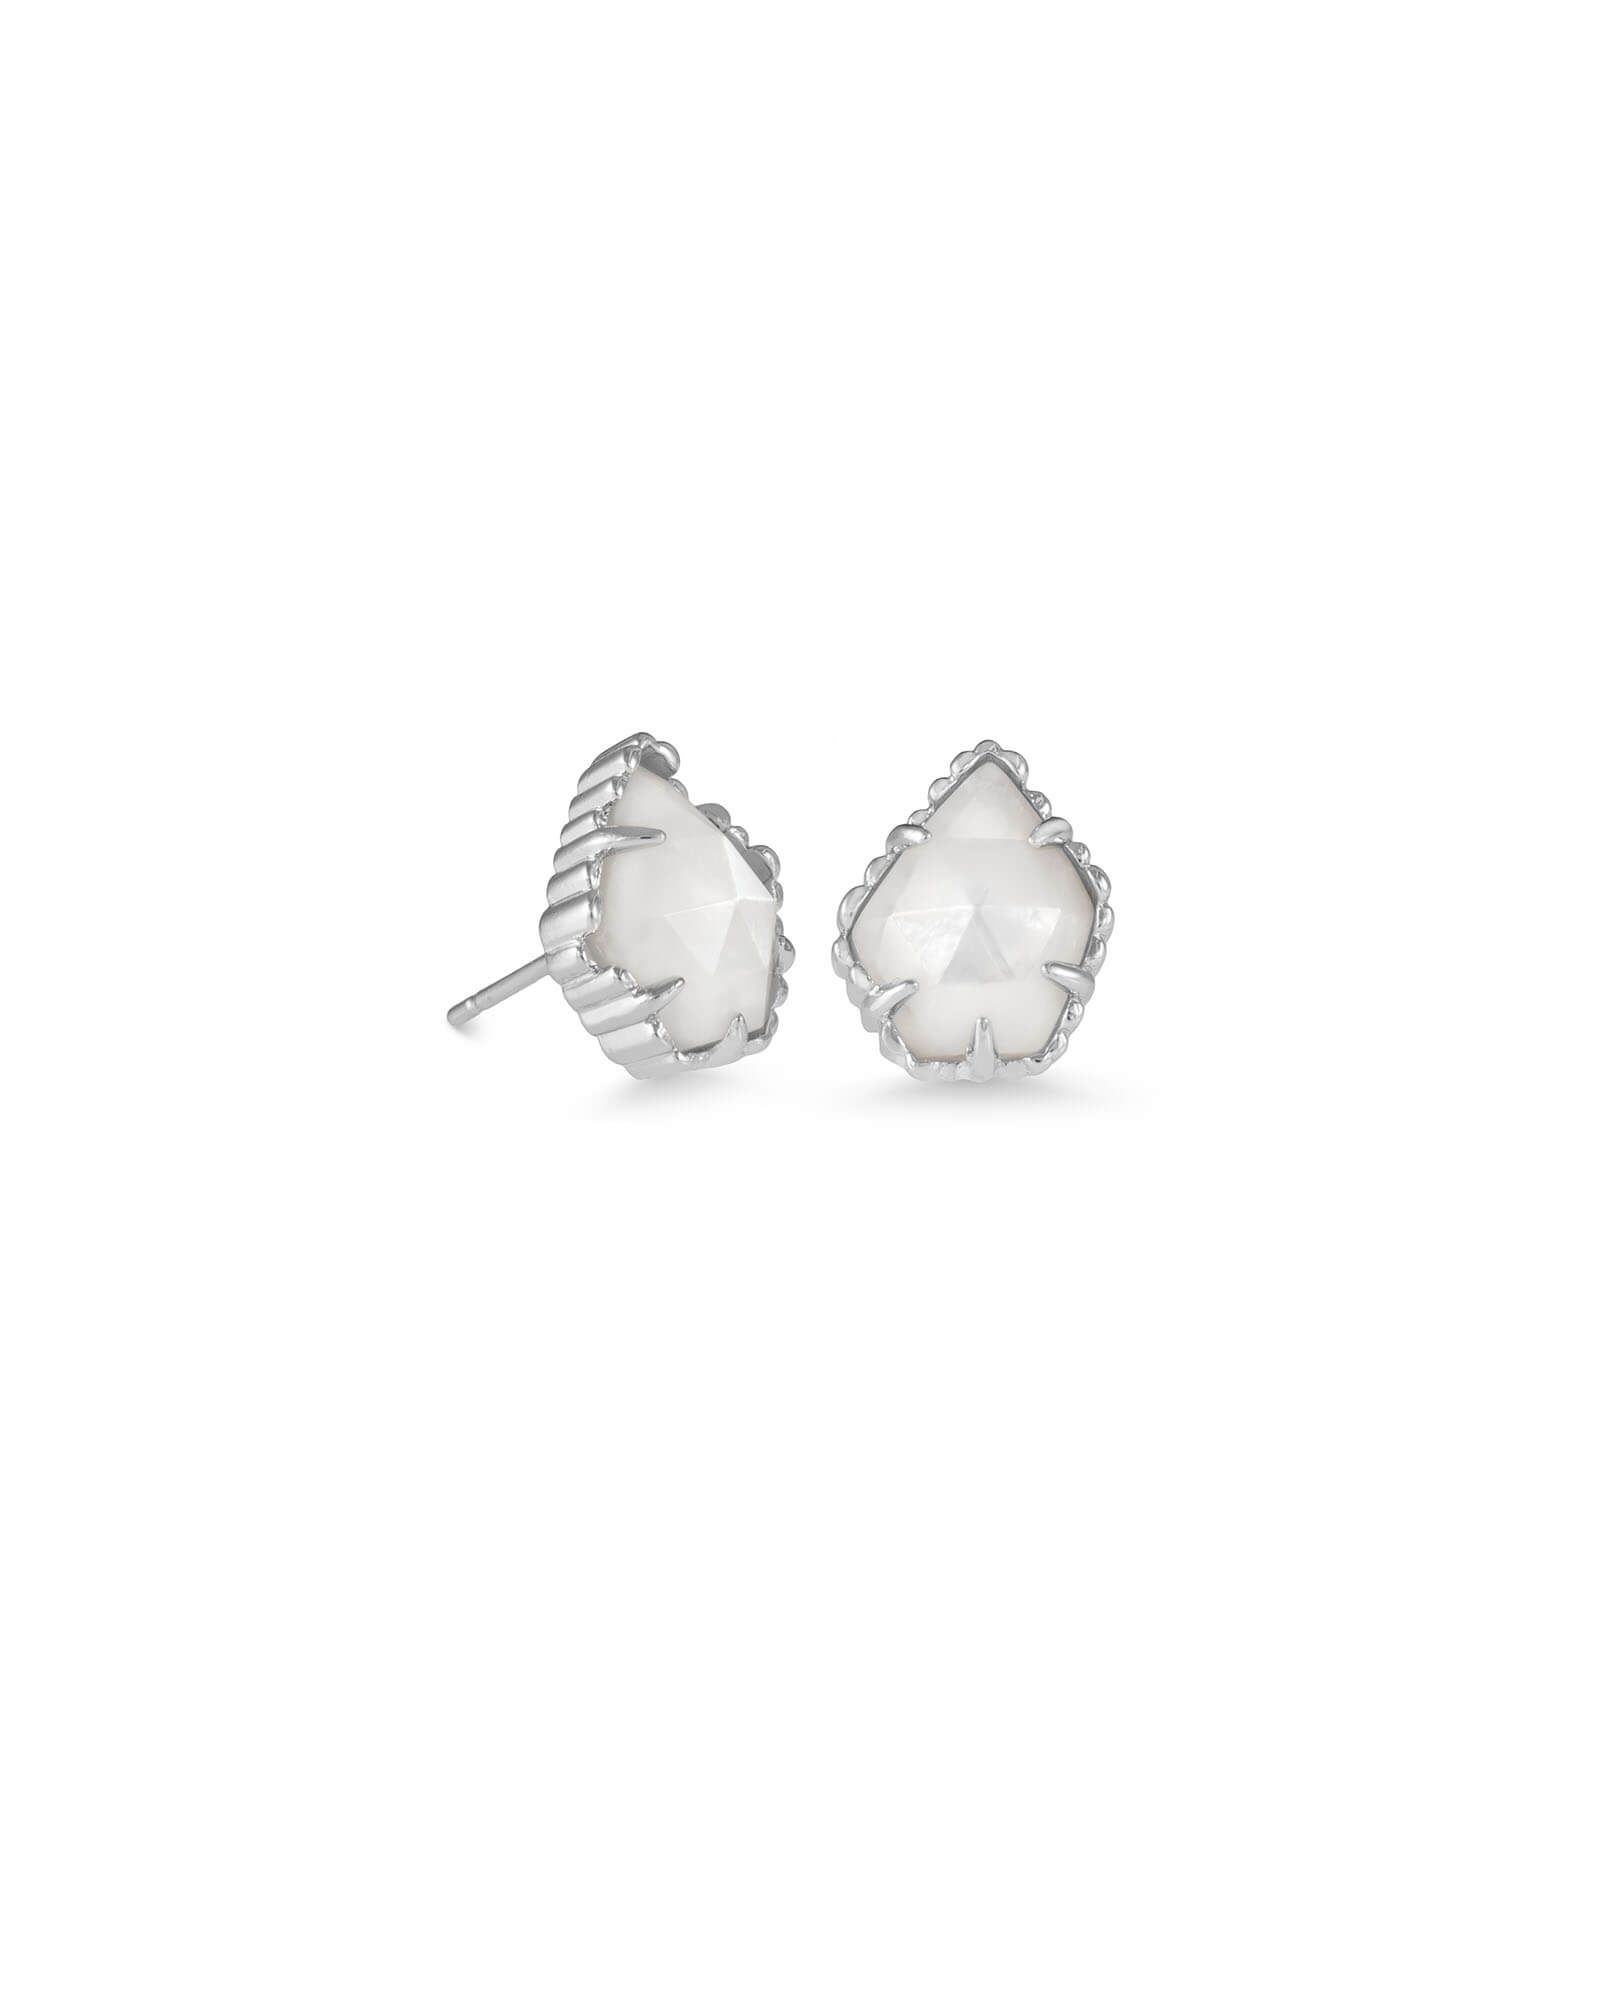 d5e849562 Tessa Silver Stud Earrings in Ivory Pearl | Kendra Scott